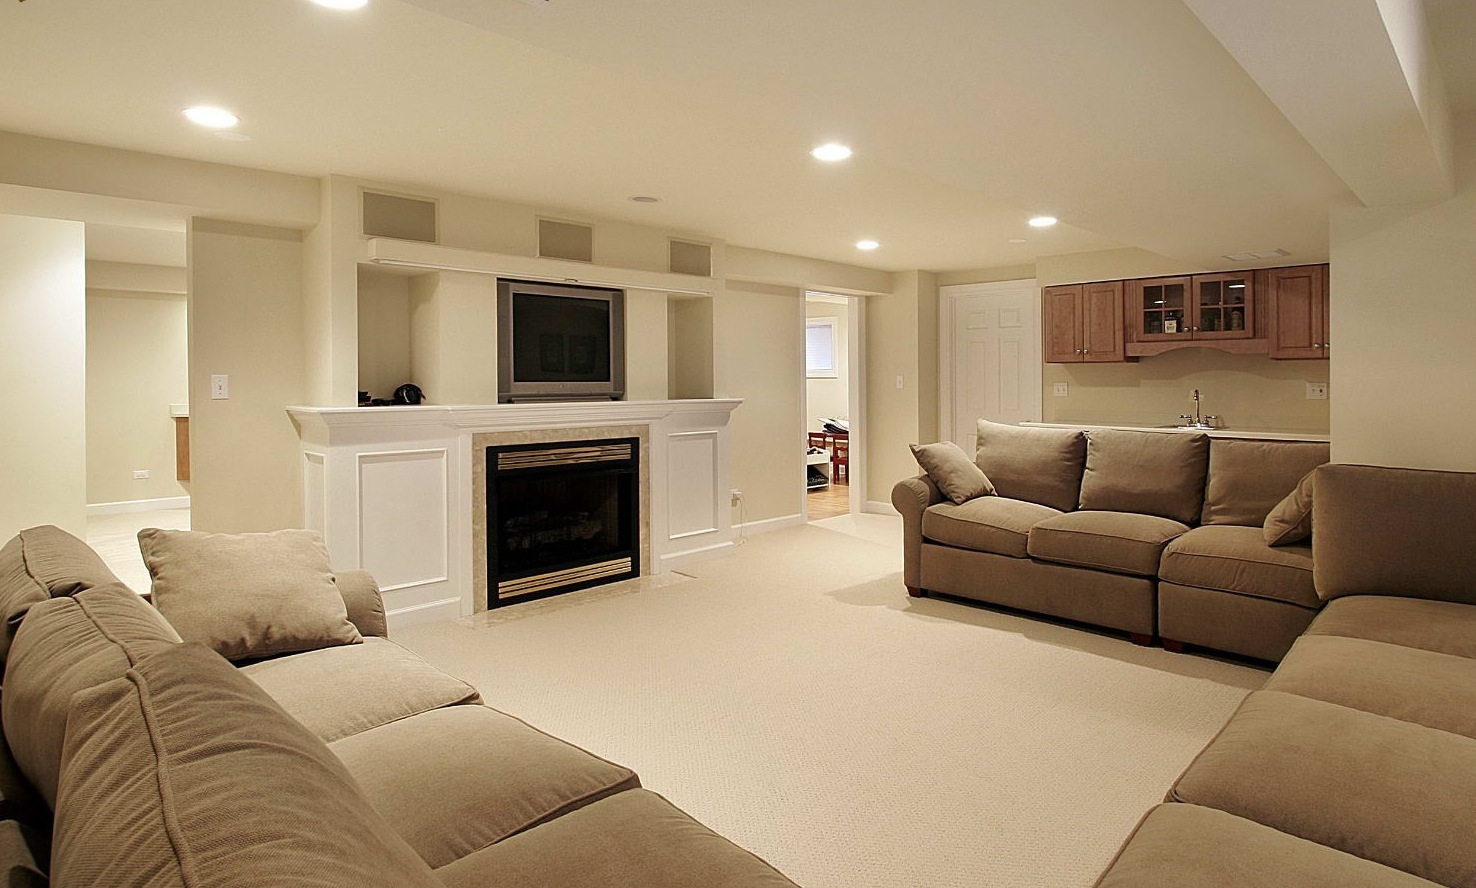 Renovated Basements 30 Basement Remodeling Ideas & Inspiration